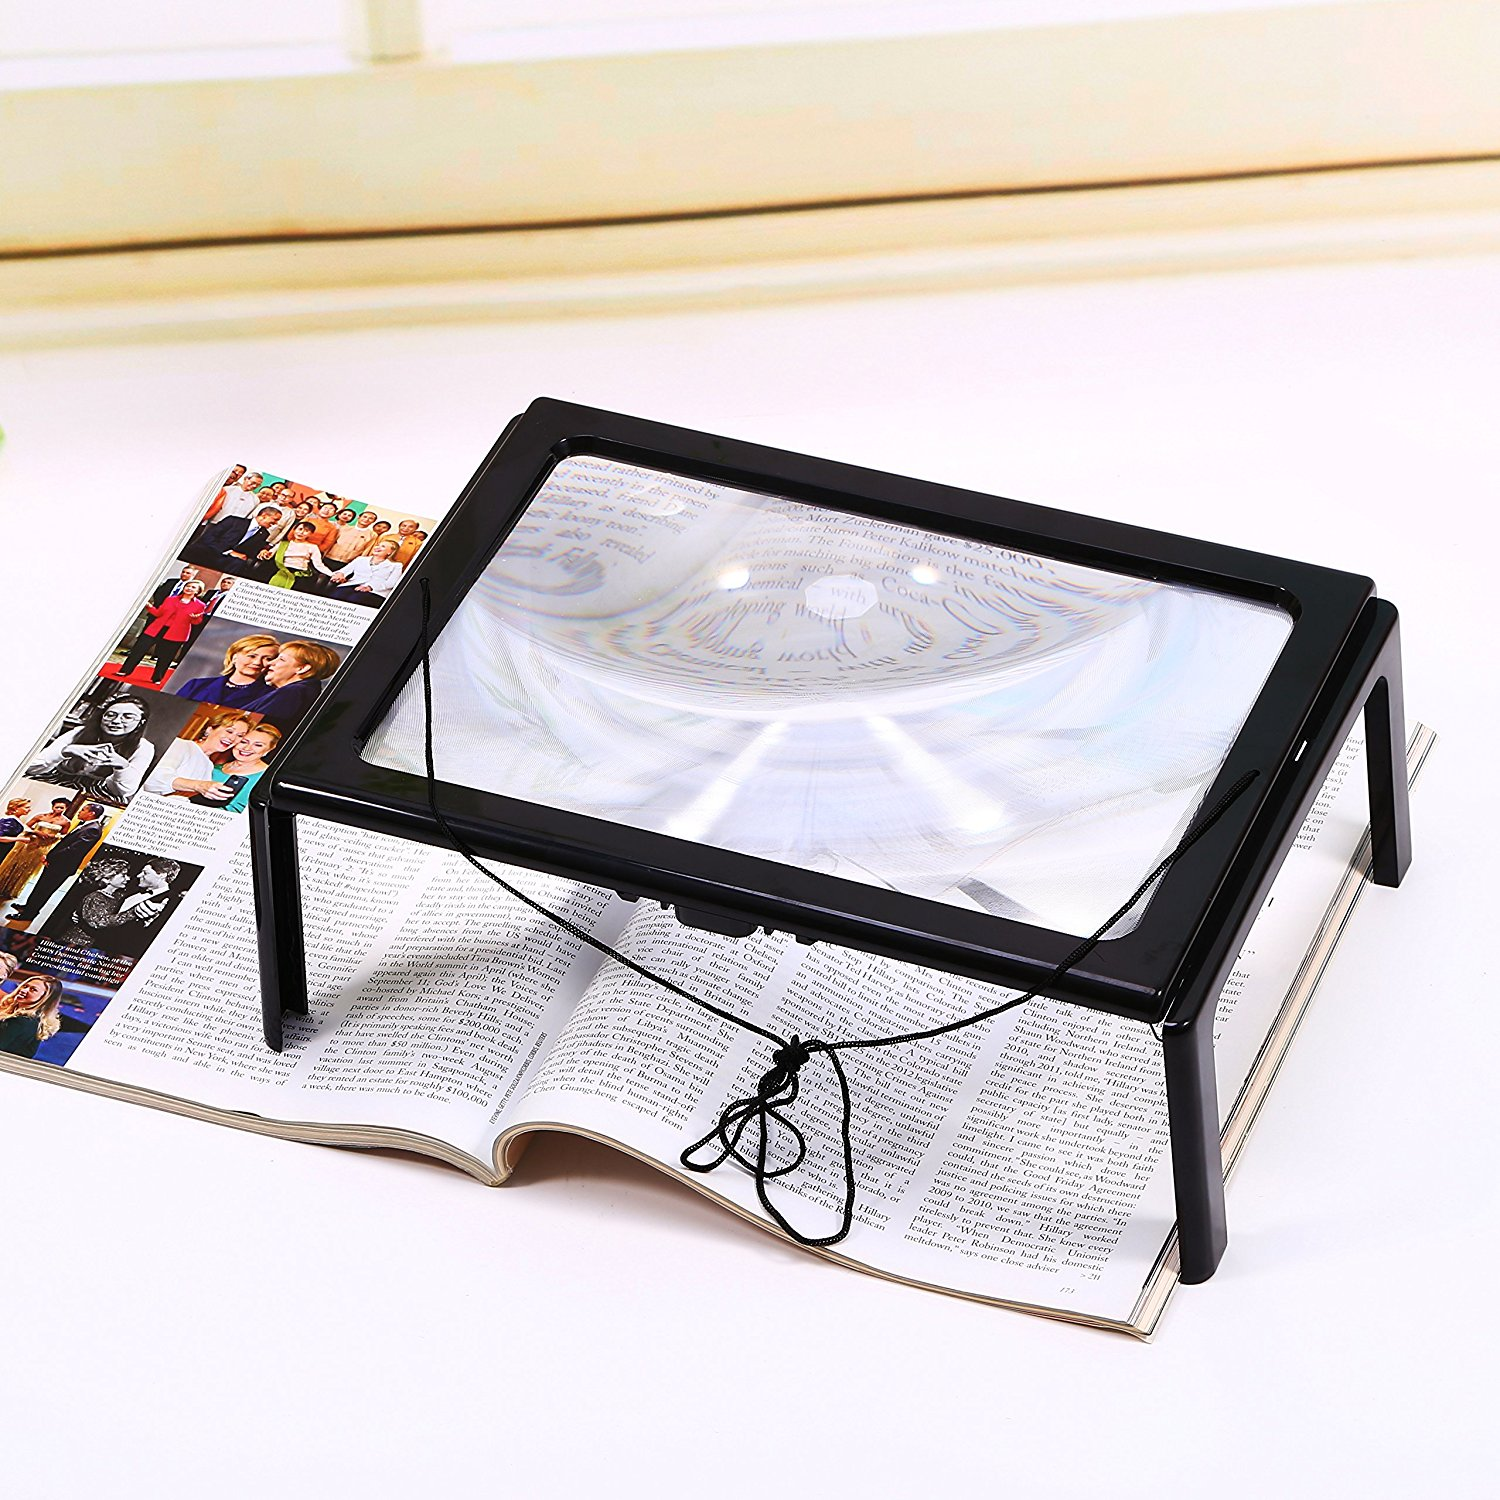 3X Magnification Reading Magnifier Foldable Desk Magnifier A4 Full Page Large Hands Free Page  Magnifier with  4 LED Lights Ultra-thin Lens Stand For  Inspection Repair Needlework Hobby and Craft